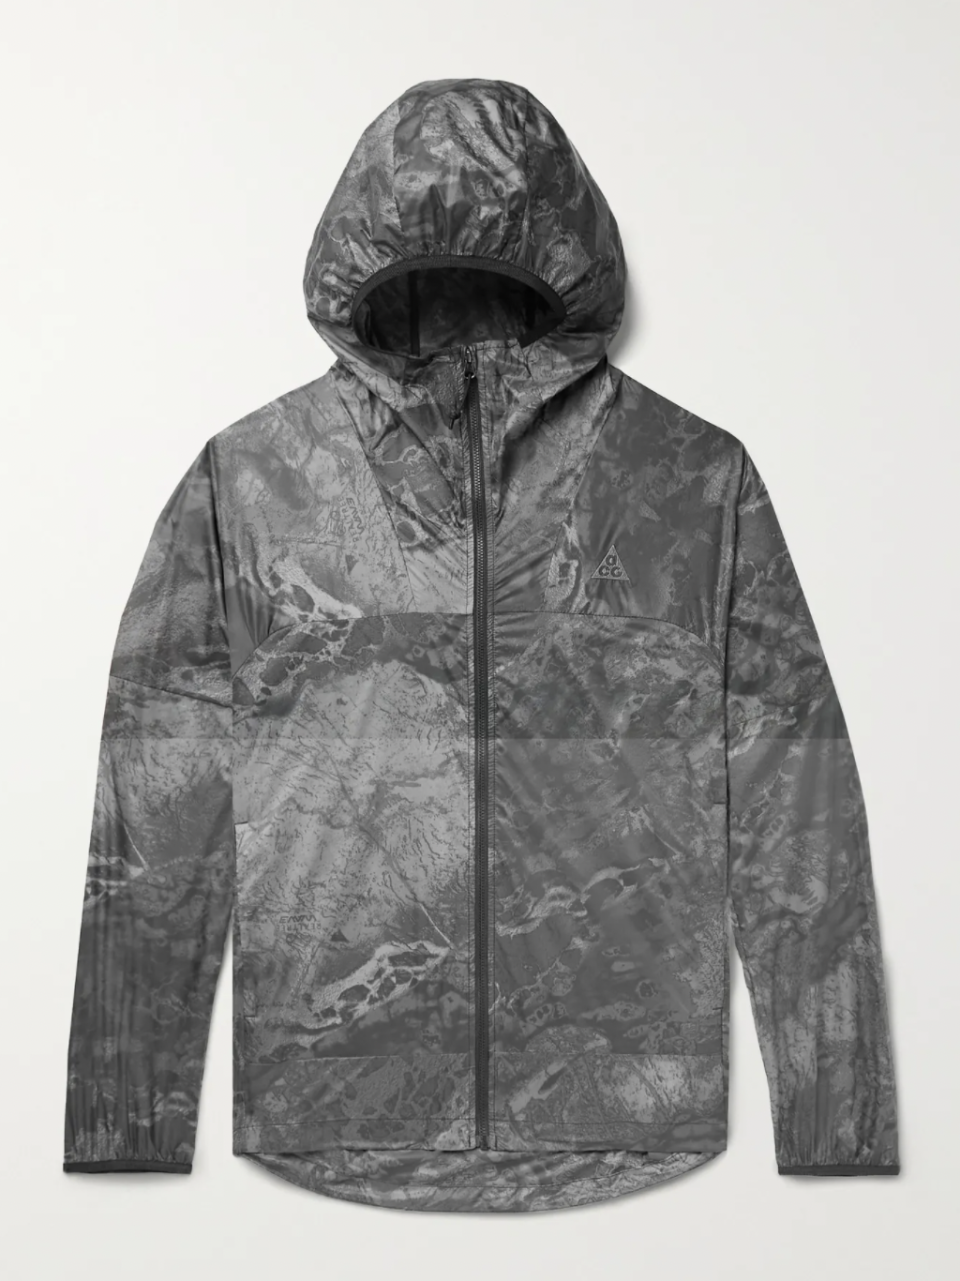 """<p><strong>NIKE ACG </strong></p><p>mrporter.com</p><p><strong>$140.00</strong></p><p><a href=""""https://go.redirectingat.com?id=74968X1596630&url=https%3A%2F%2Fwww.mrporter.com%2Fen-us%2Fmens%2Fproduct%2Fnike%2Fclothing%2Flightweight-waterproof-jackets%2Fnrg-acg-cinder-cone-printed-recycled-nylon-jacket%2F13452677152576728&sref=https%3A%2F%2Fwww.esquire.com%2Fstyle%2Fadvice%2Fg2995%2Fbest-fall-coats-jackets%2F"""" rel=""""nofollow noopener"""" target=""""_blank"""" data-ylk=""""slk:Shop Now"""" class=""""link rapid-noclick-resp"""">Shop Now</a></p><p><a href=""""https://www.esquire.com/style/mens-fashion/g37080317/best-techwear-pants/"""" rel=""""nofollow noopener"""" target=""""_blank"""" data-ylk=""""slk:Techwear enthusiasts"""" class=""""link rapid-noclick-resp"""">Techwear enthusiasts</a> will get the appeal of this recycled nylon jacket from Nike ACG. </p>"""